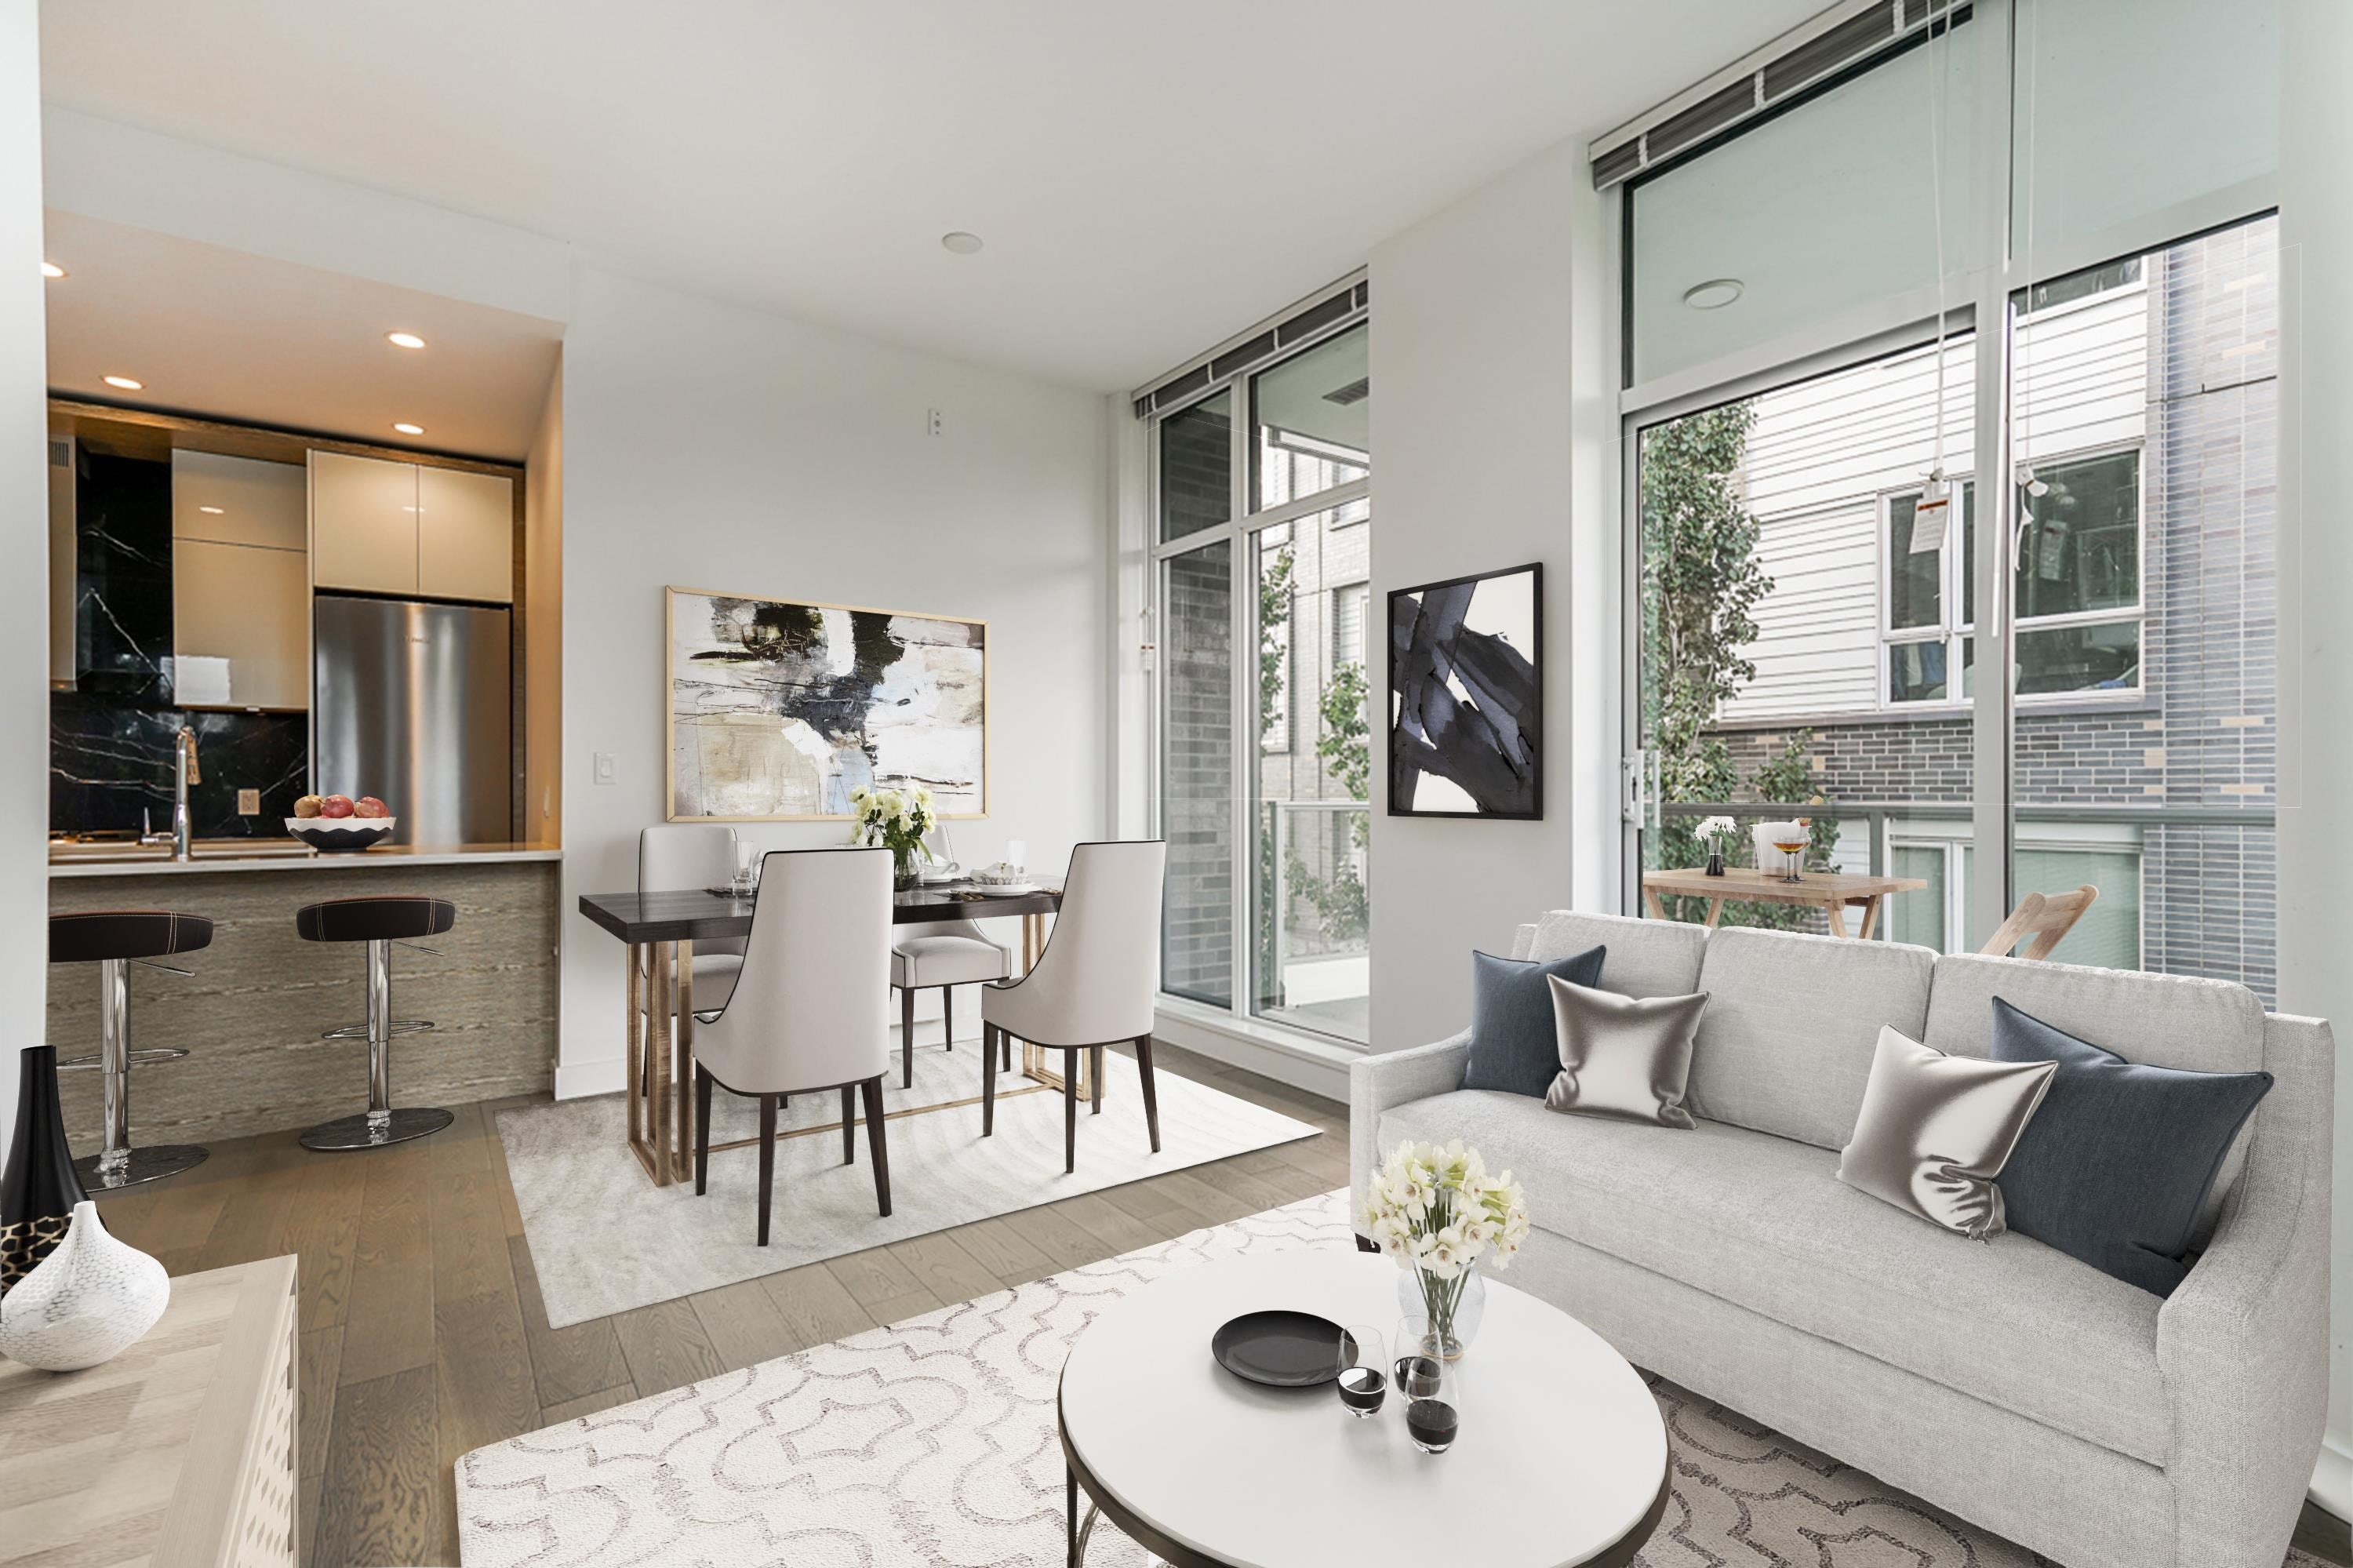 302 6733 CAMBIE STREET - South Cambie Apartment/Condo for sale, 2 Bedrooms (R2615242)